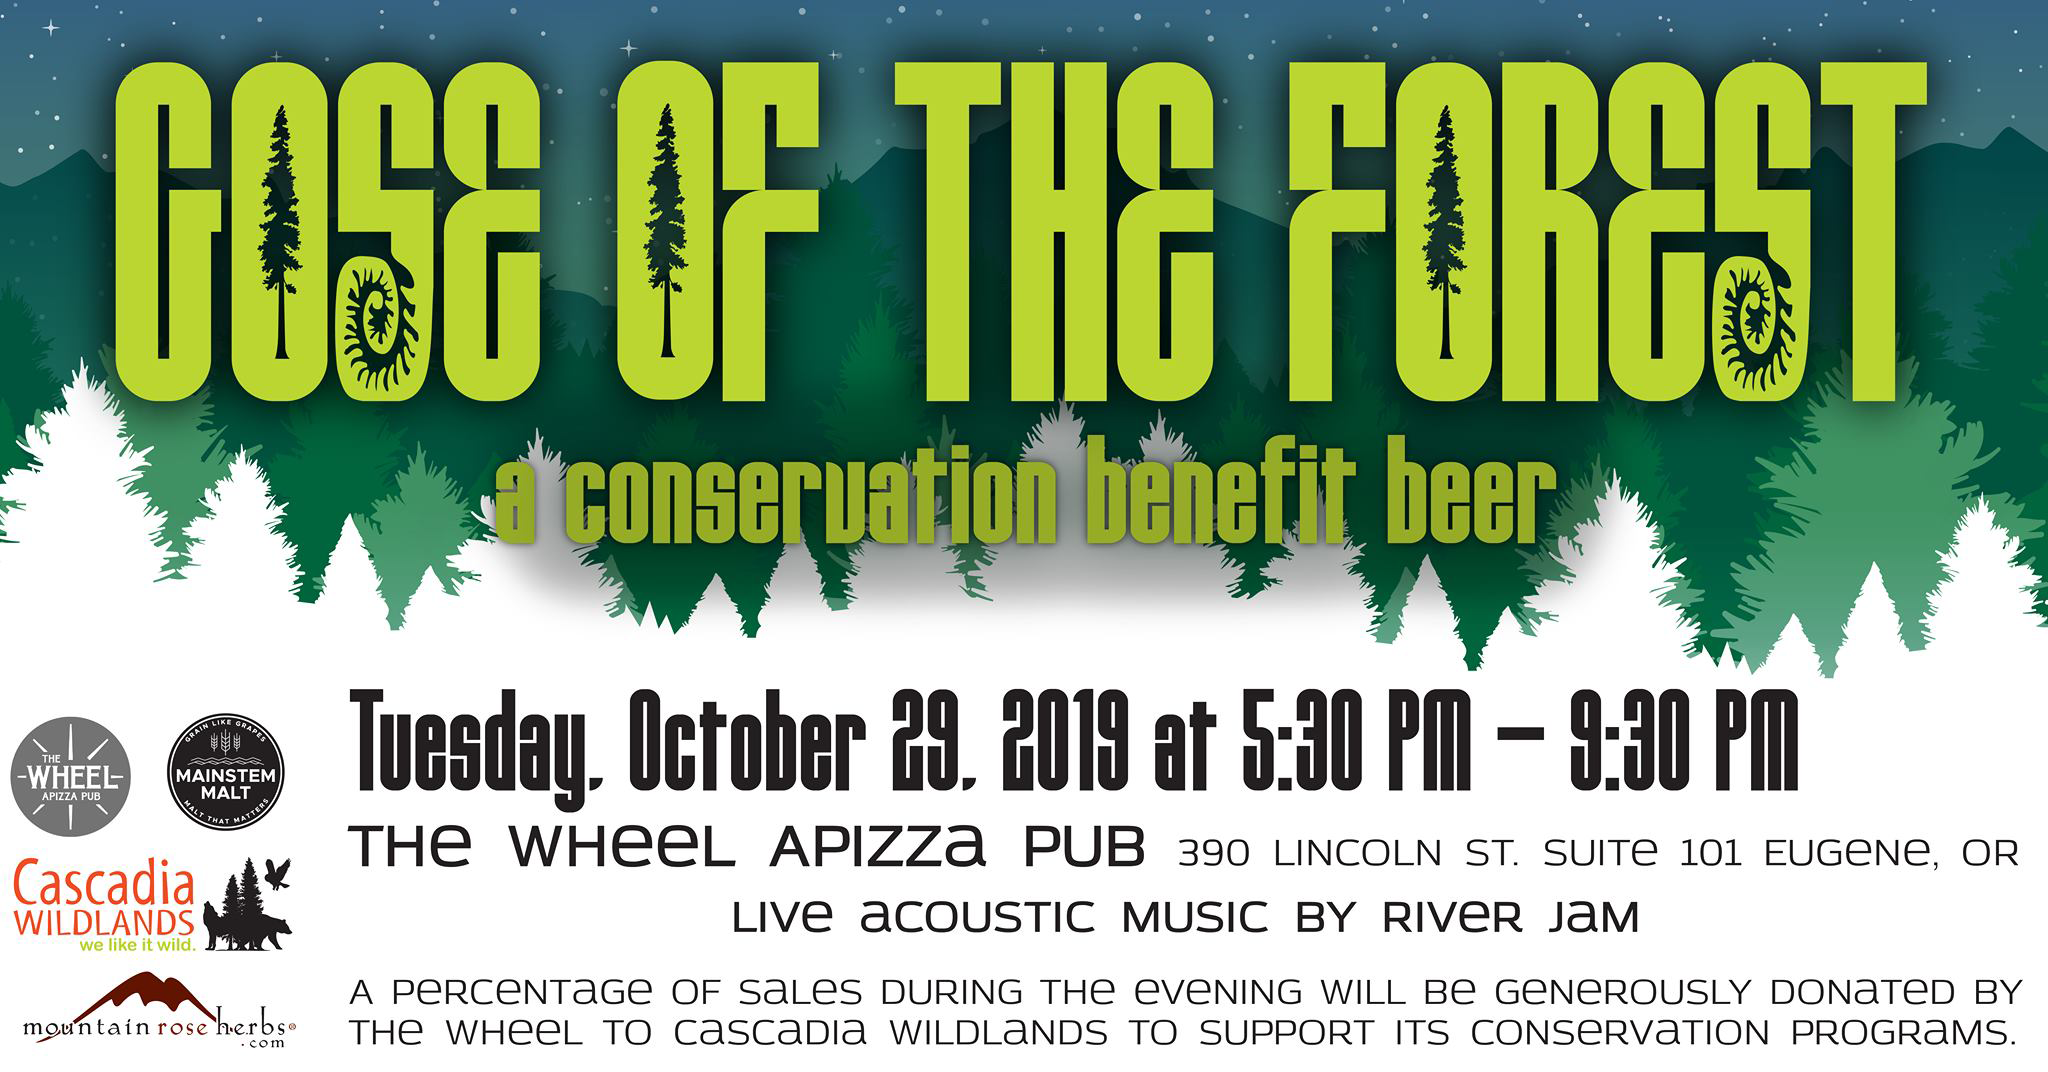 Beer Benefit at The Wheel Apizza Pub- October 29, 2019